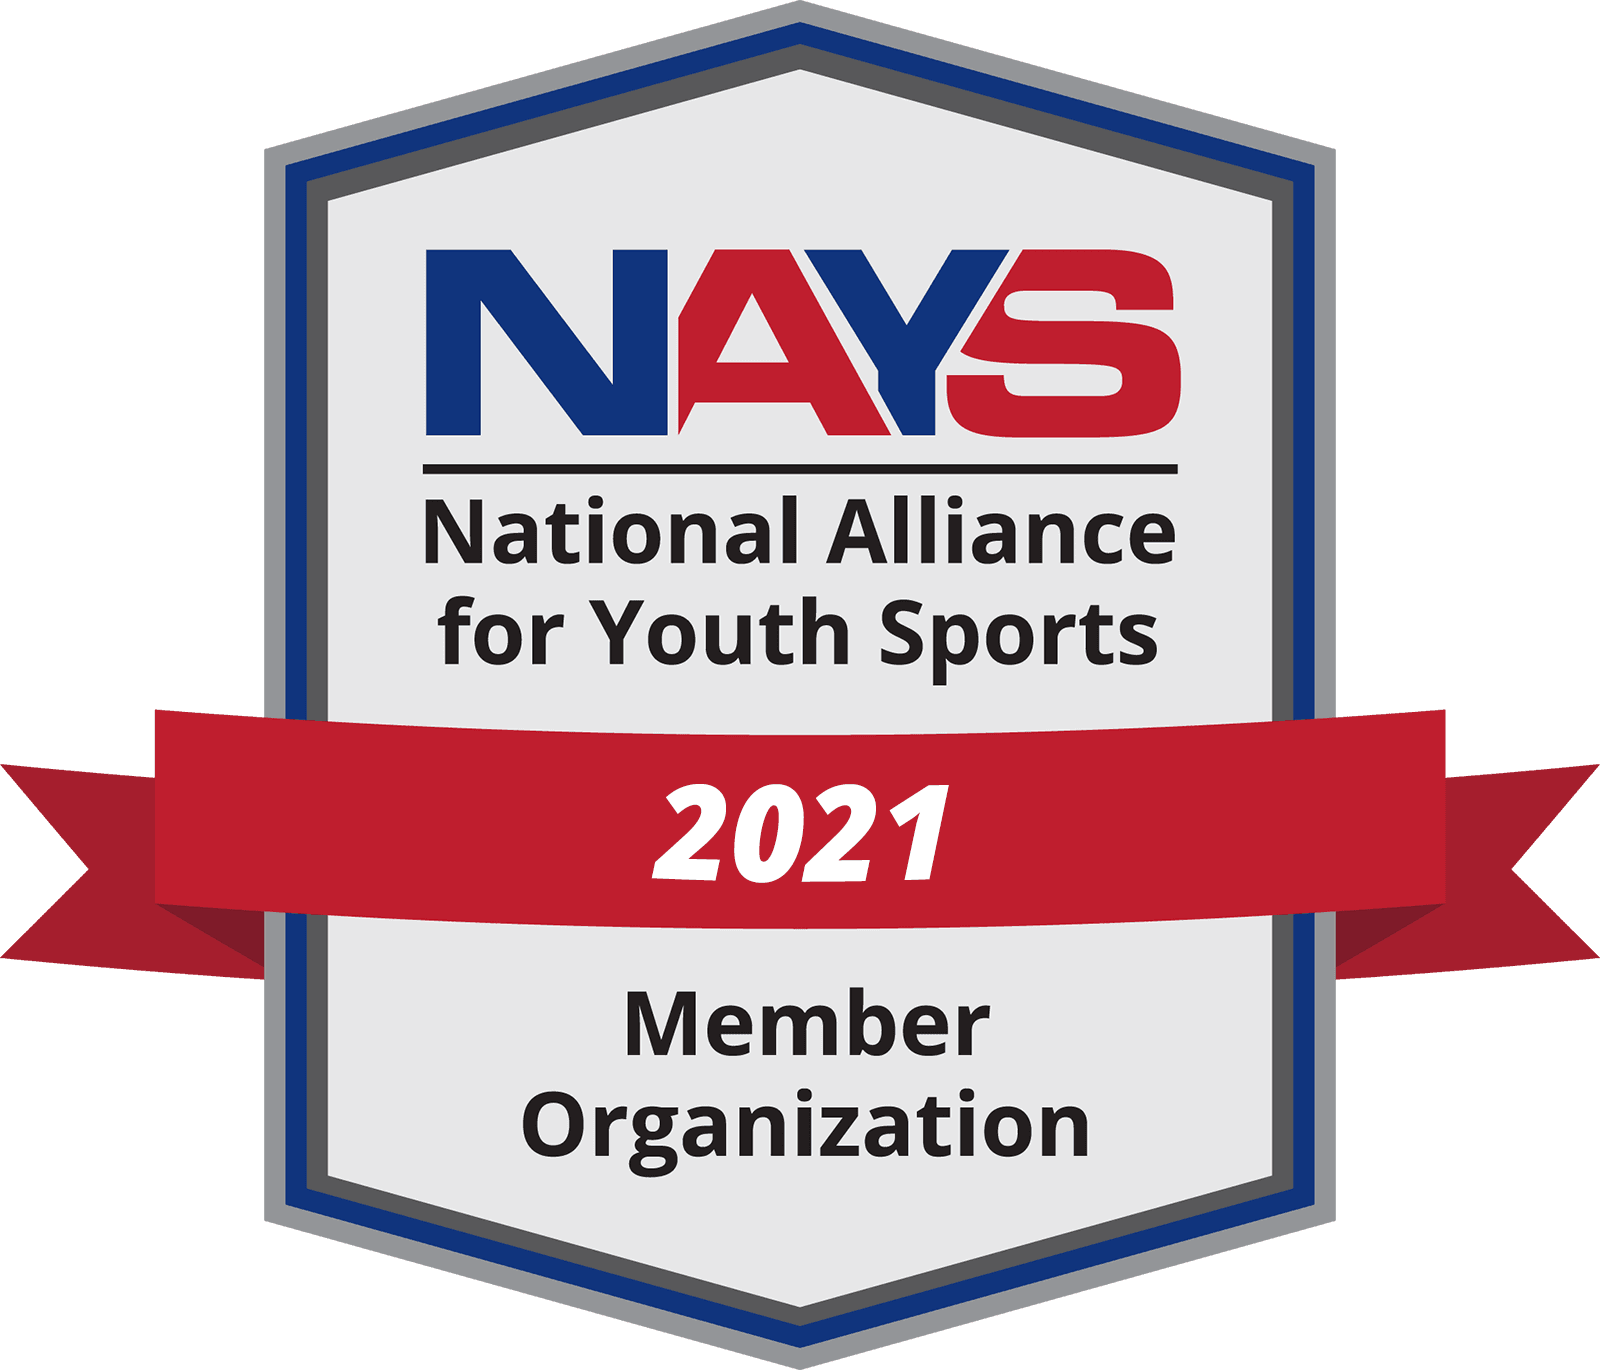 National Alliance for Youth Sports logo